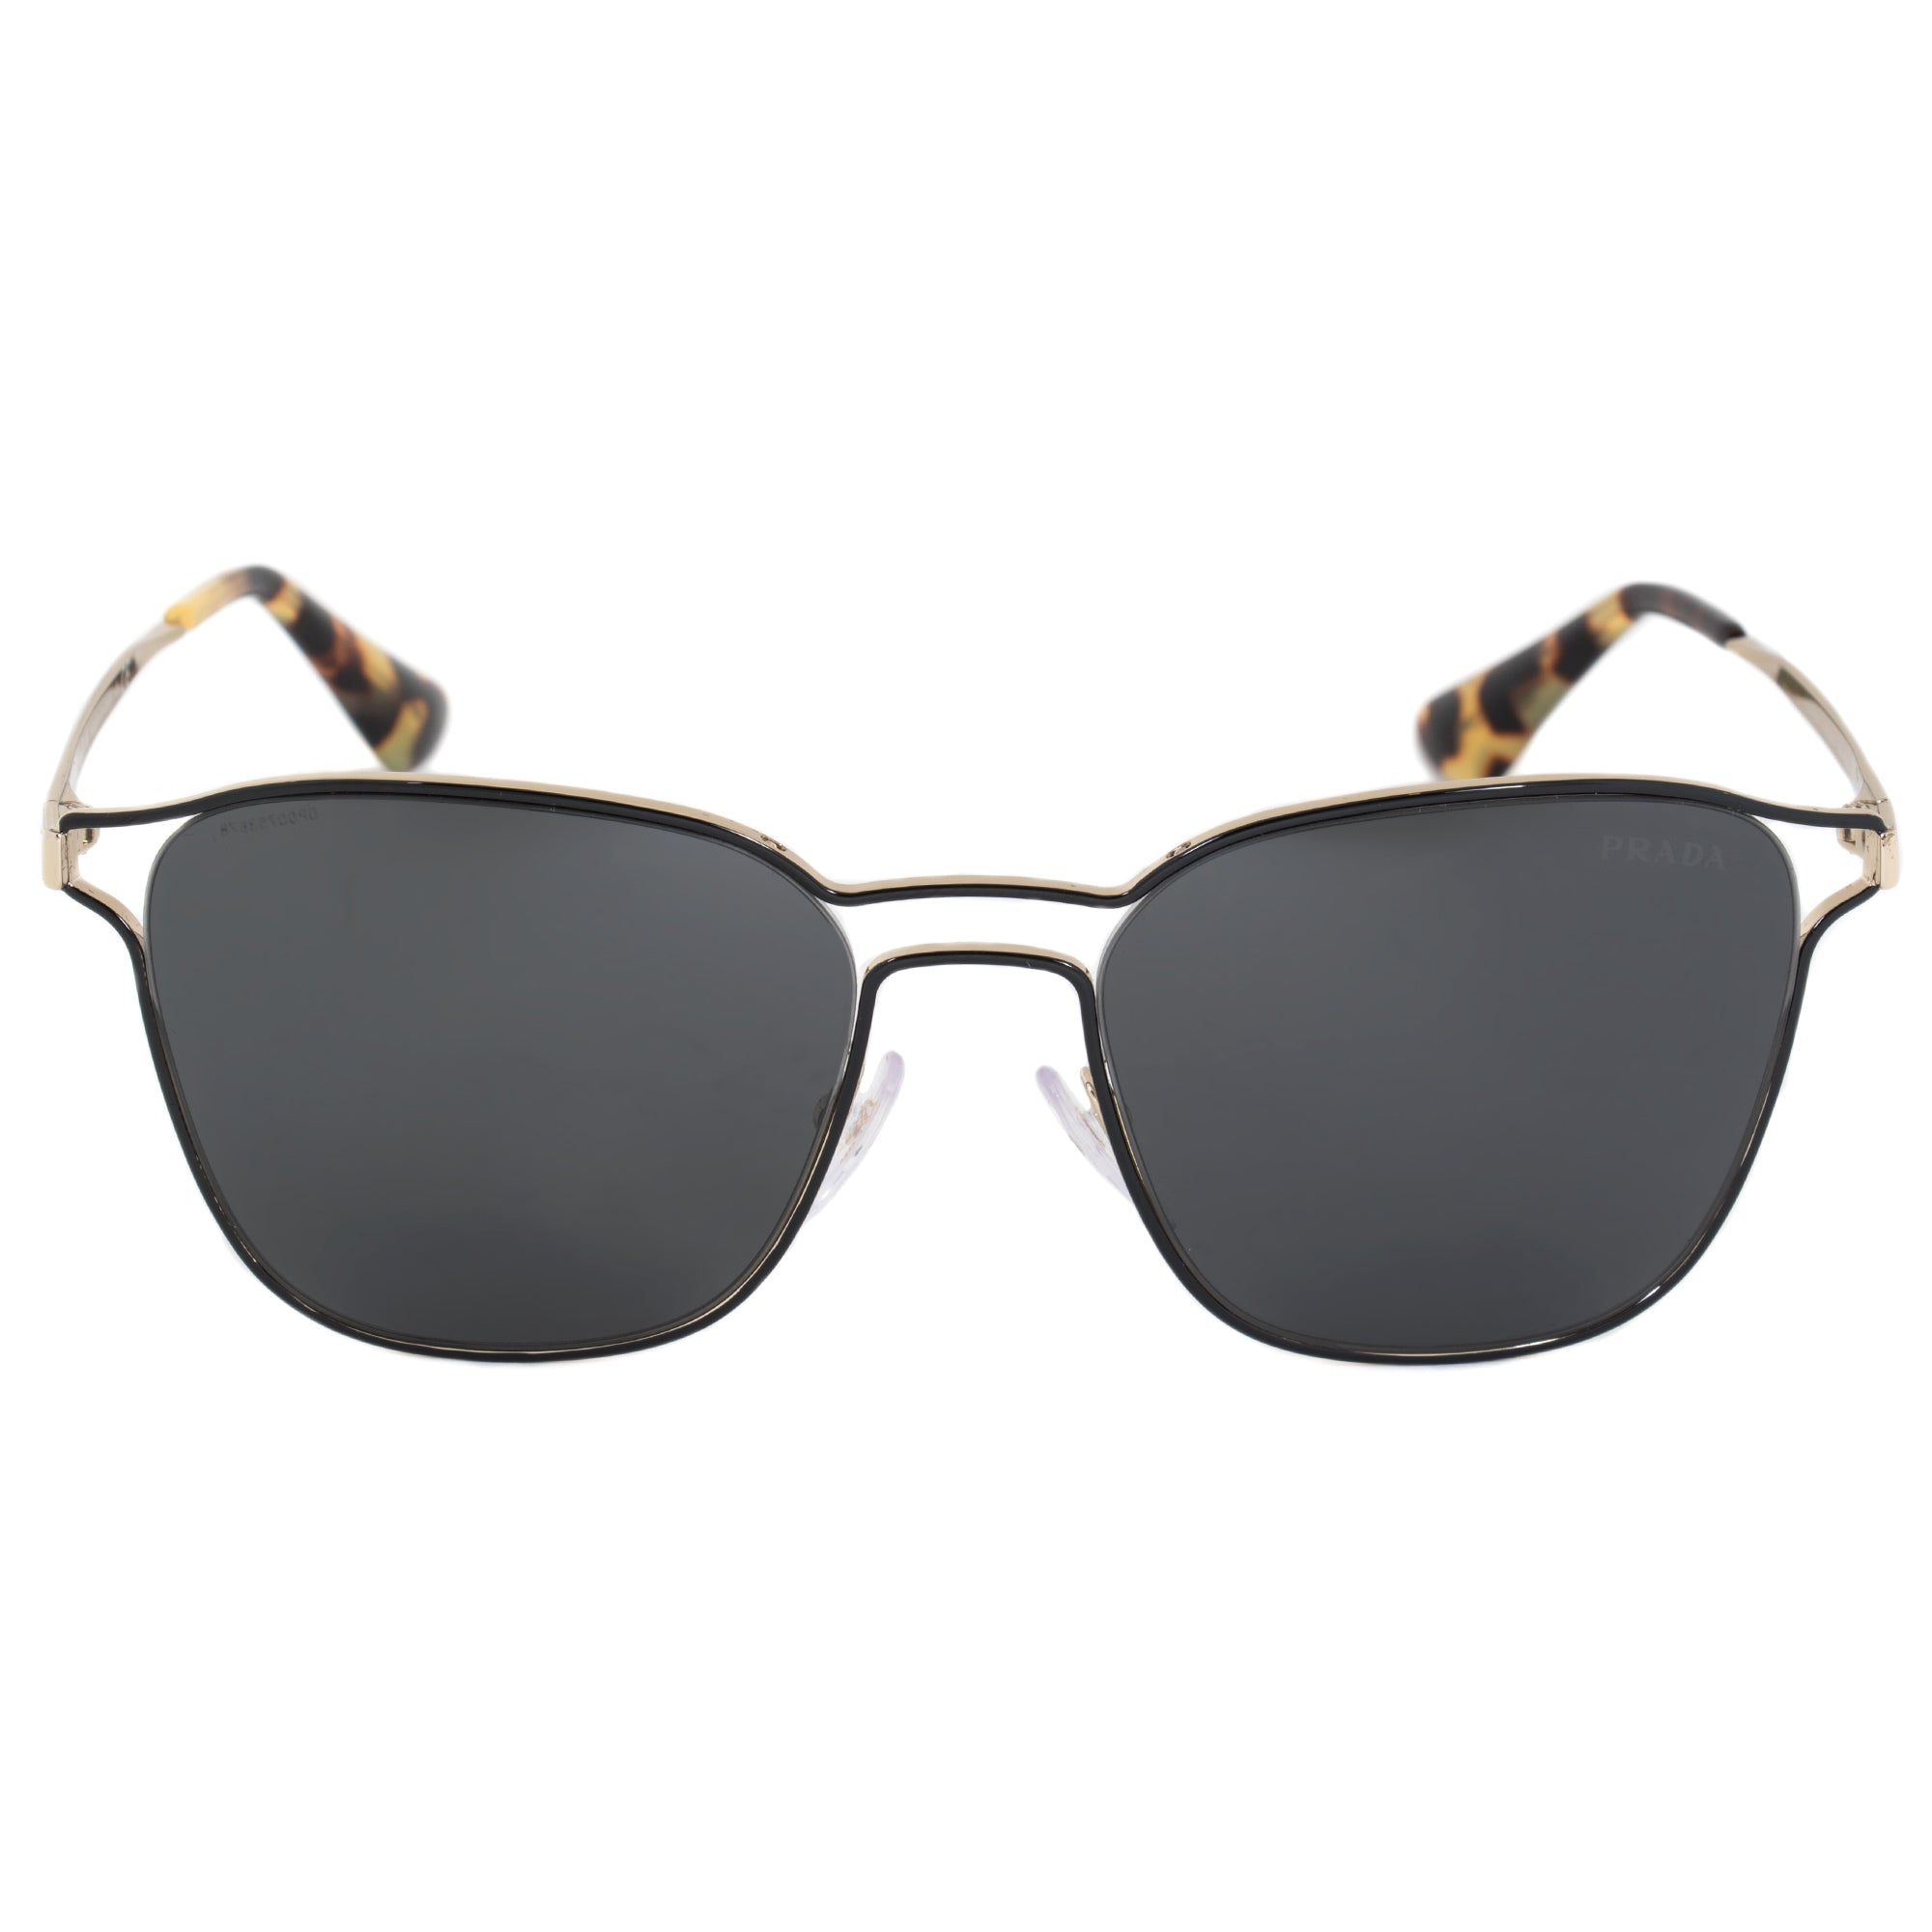 Prada Cinema Square Sunglasses PR54TS 1AB5S0 55 | Black Frame | Carbon Lenses